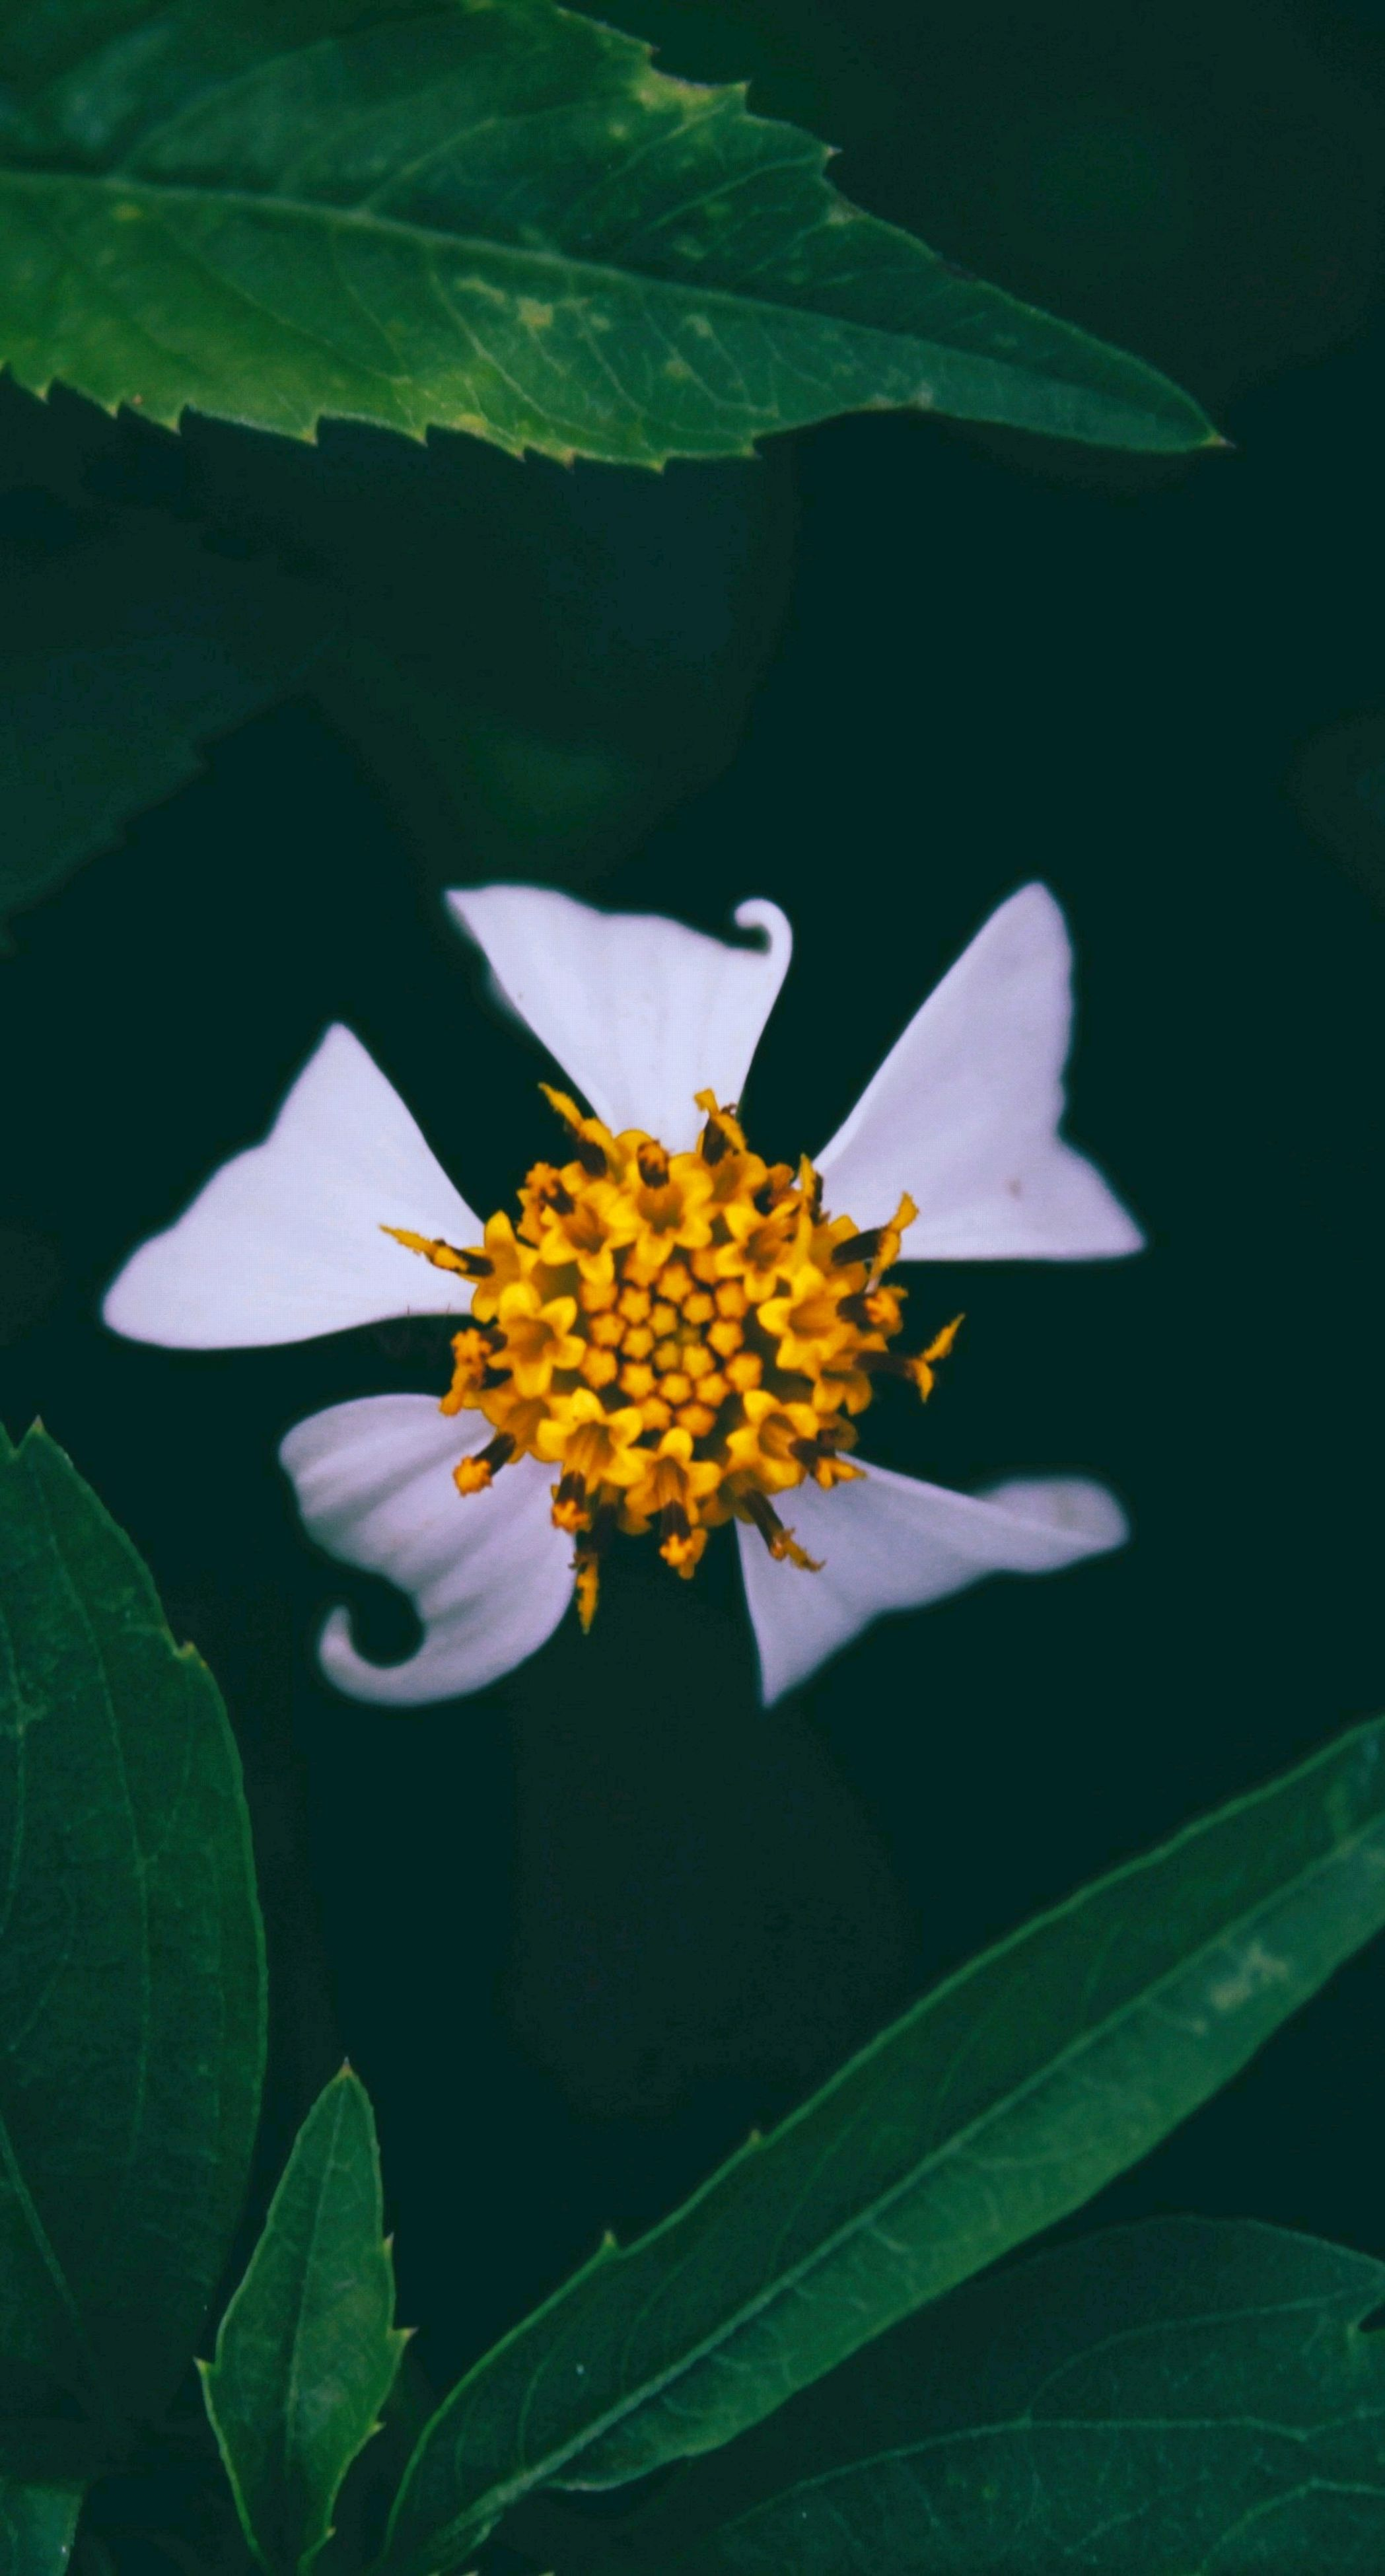 leaf, flower, petal, growth, plant, nature, fragility, beauty in nature, freshness, blooming, flower head, no people, close-up, outdoors, day